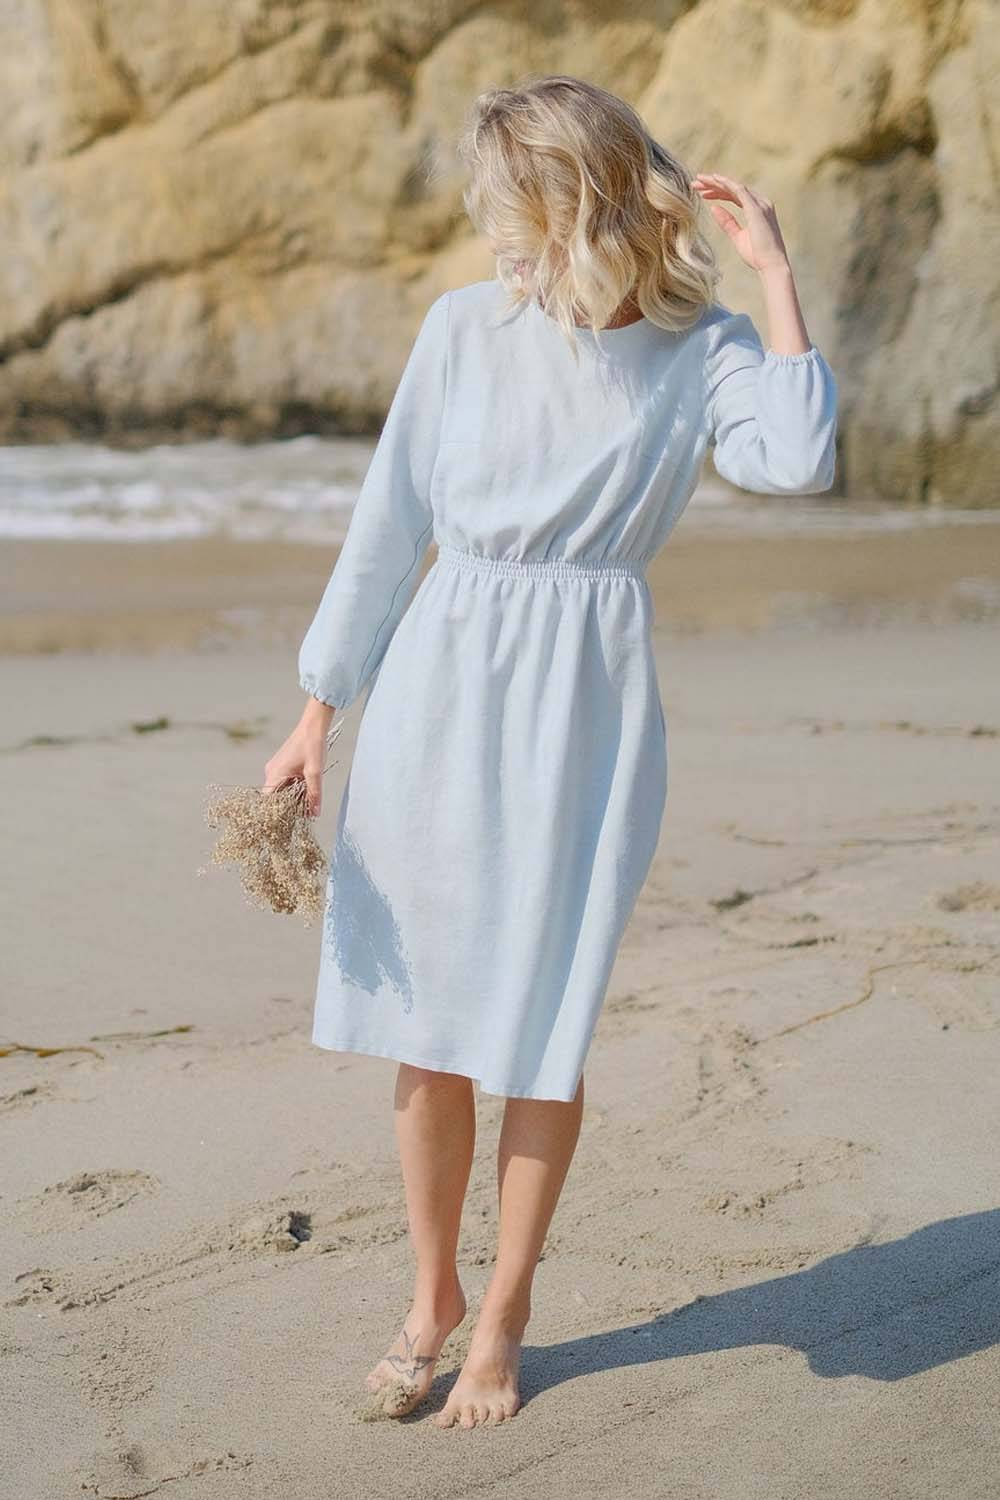 affordable linen clothing usa etsy